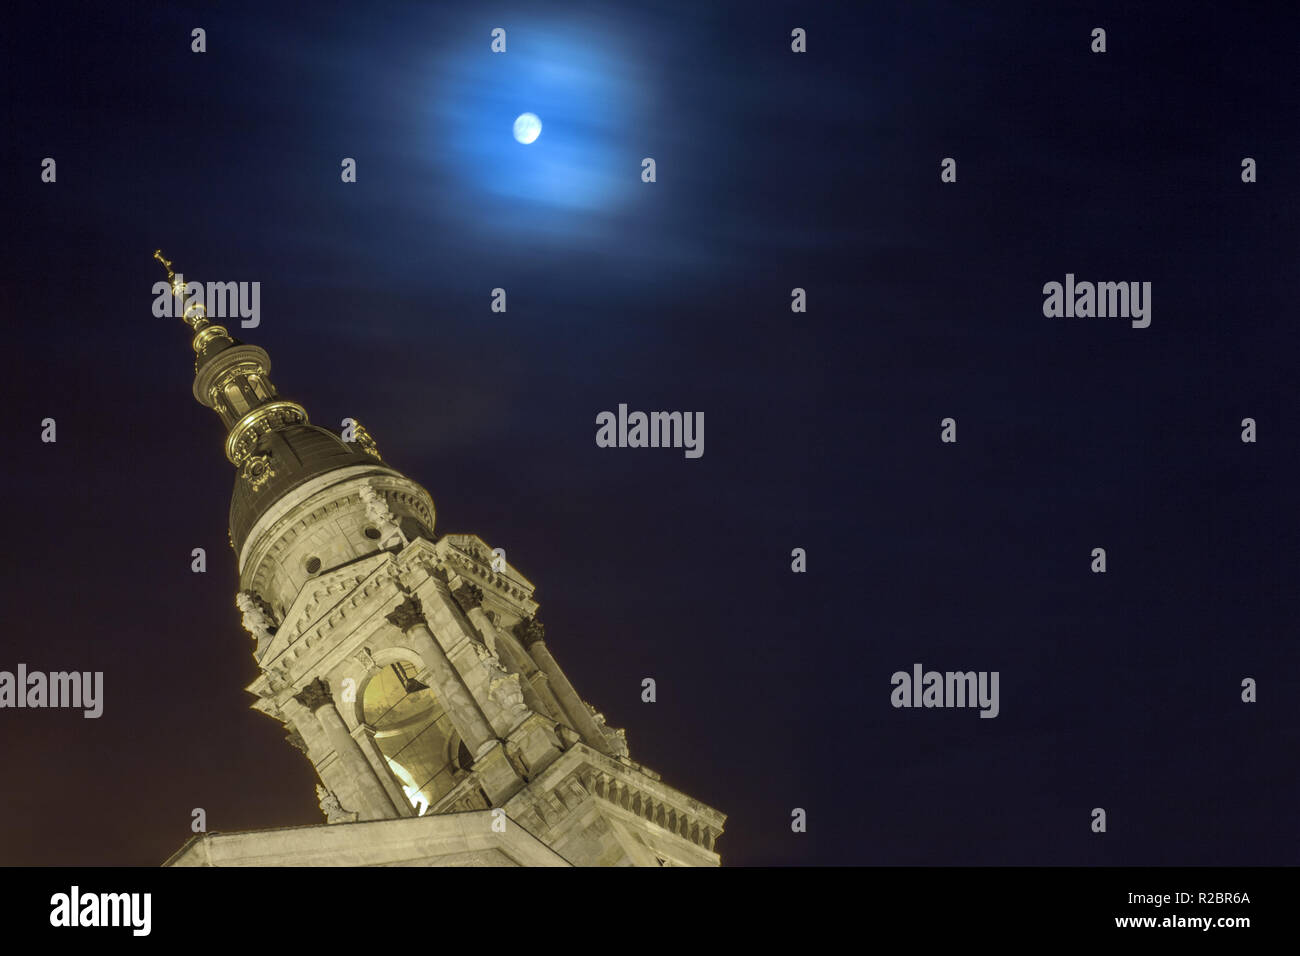 St.Stephen's Basilica and full moon - Stock Image